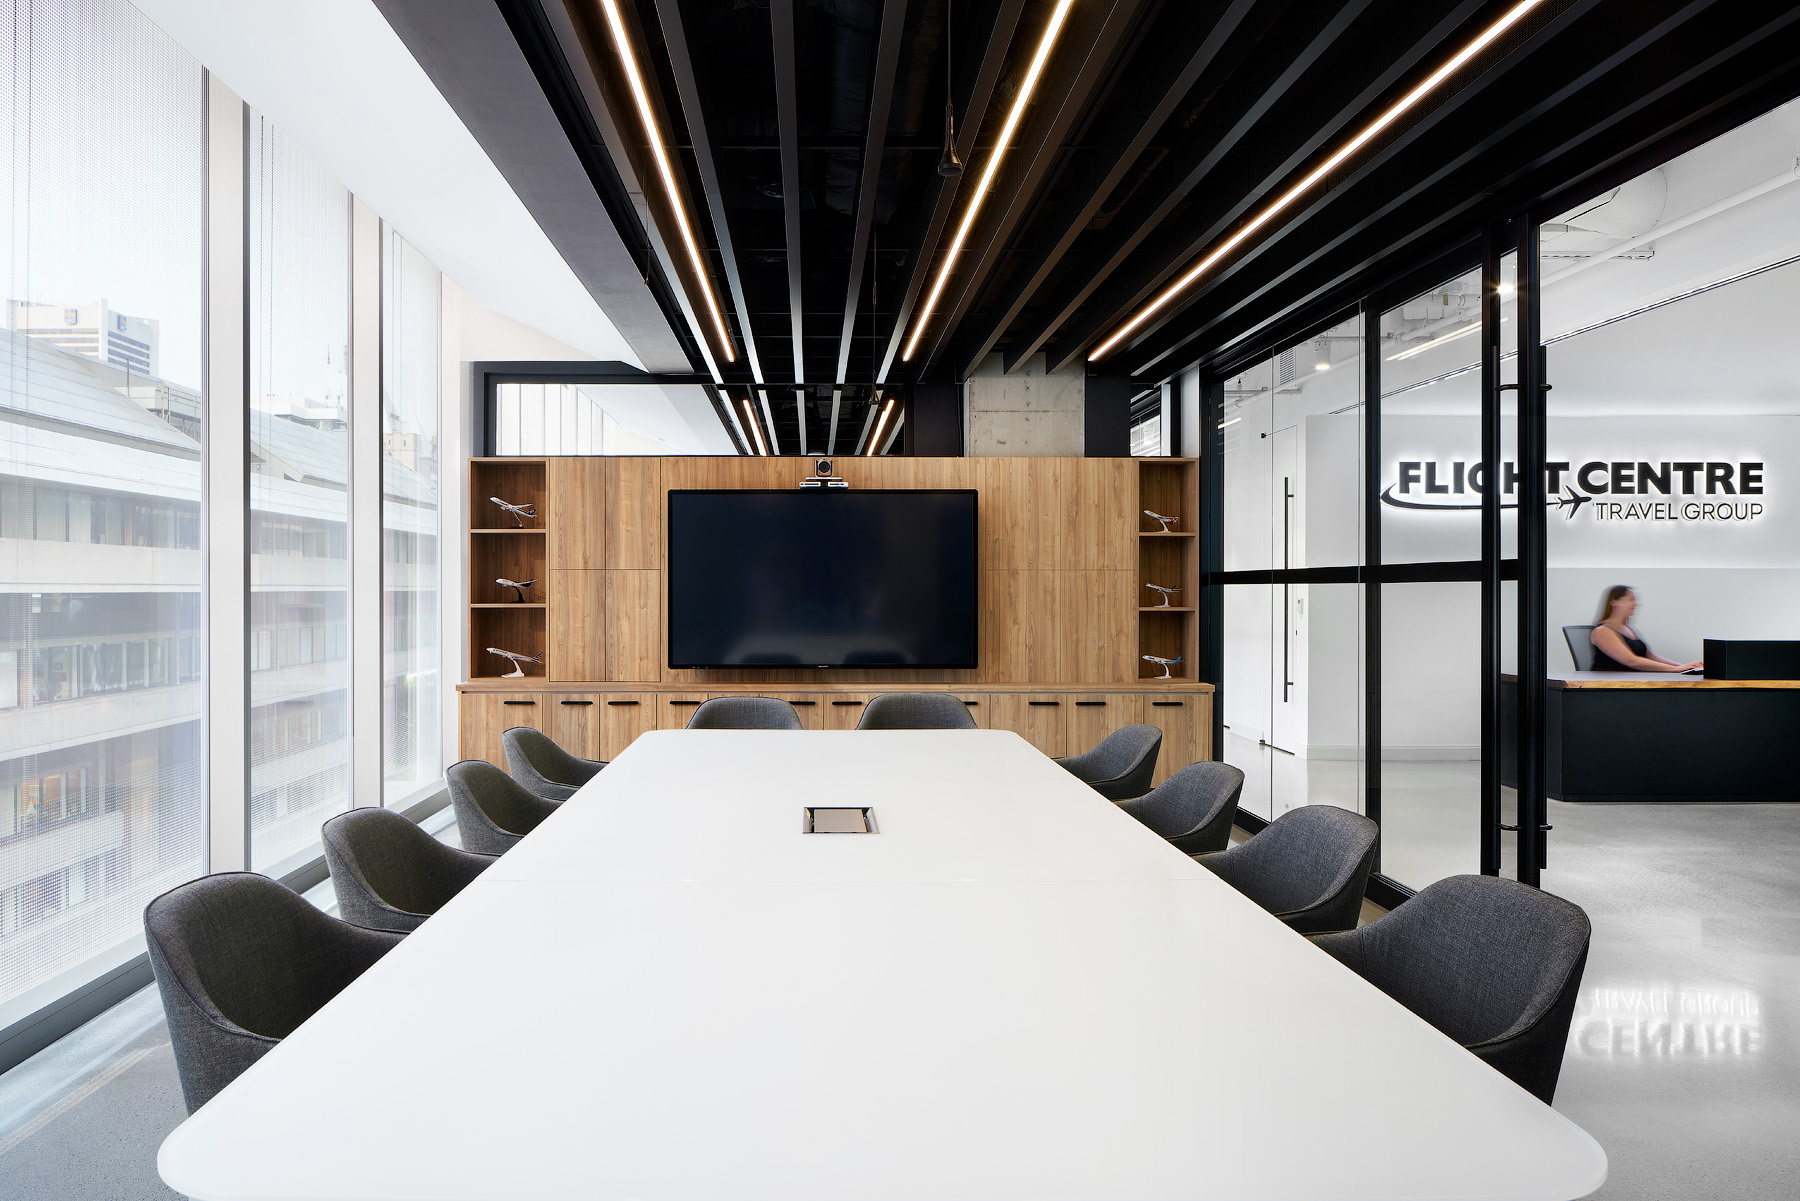 Flight Centre Vancouver conference room with large table, black ceiling panels, and wood wall with television